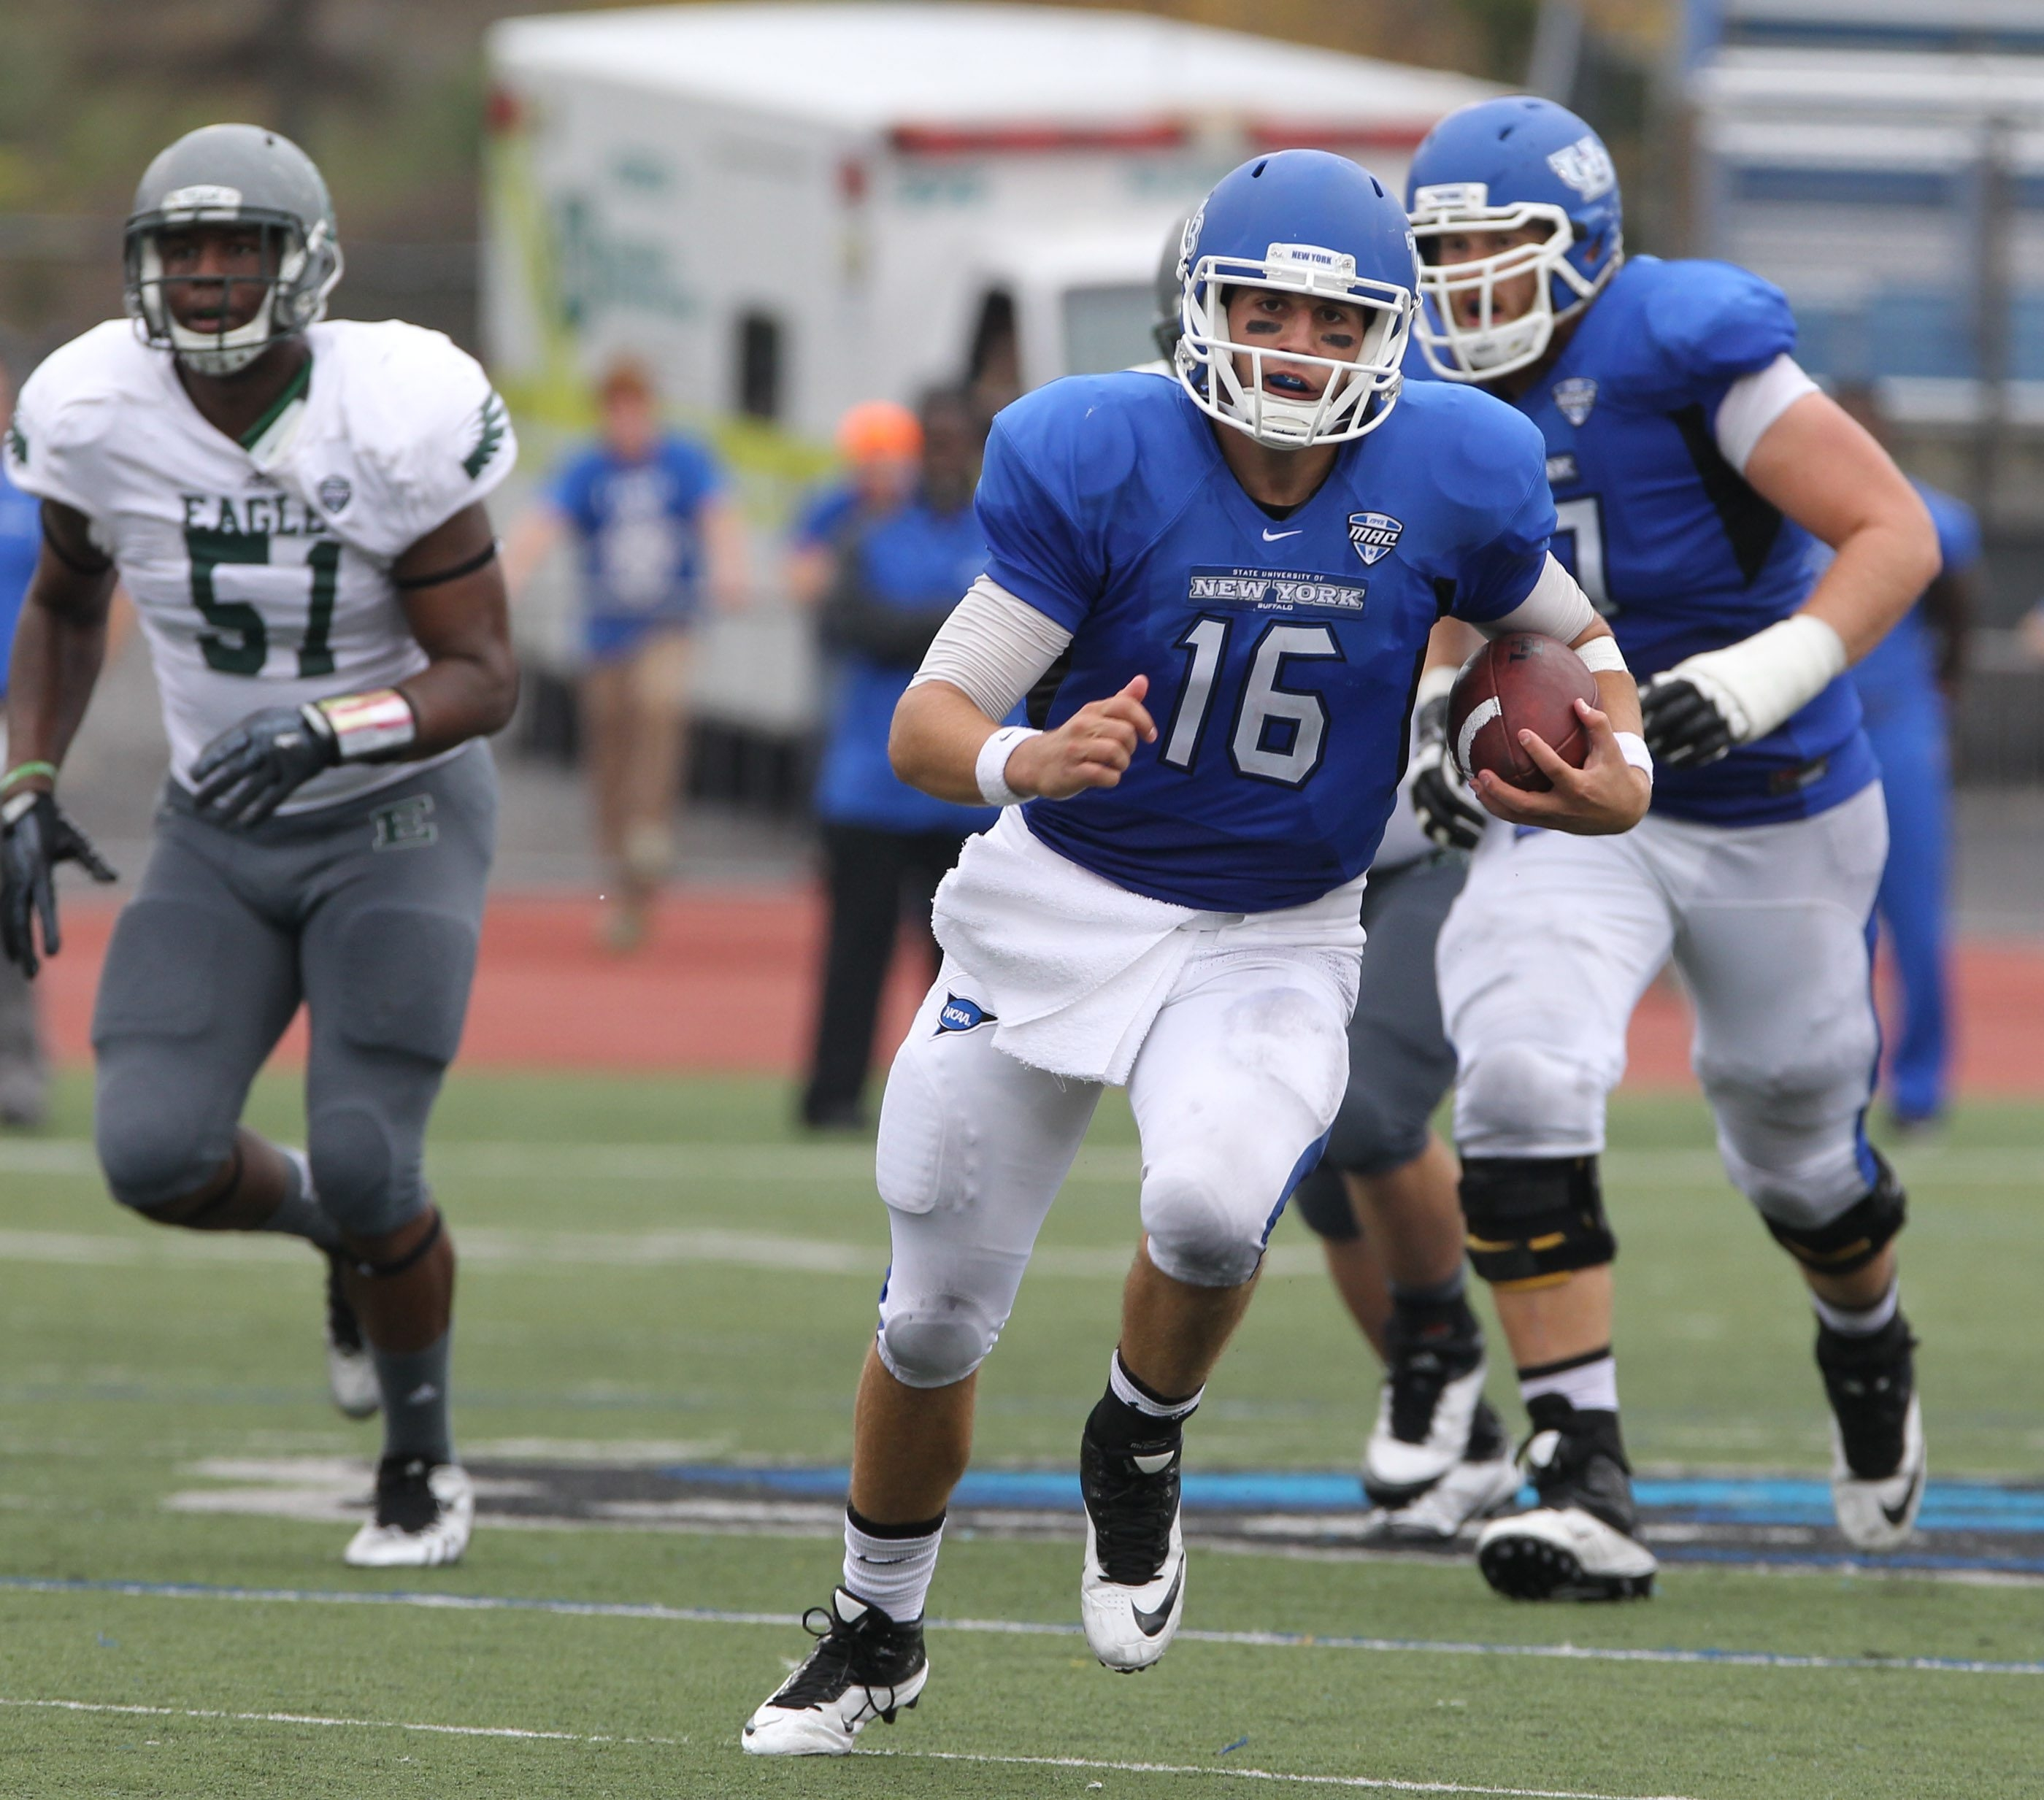 Joe Licata's 497 yards passing ranks seventh in MAC history.